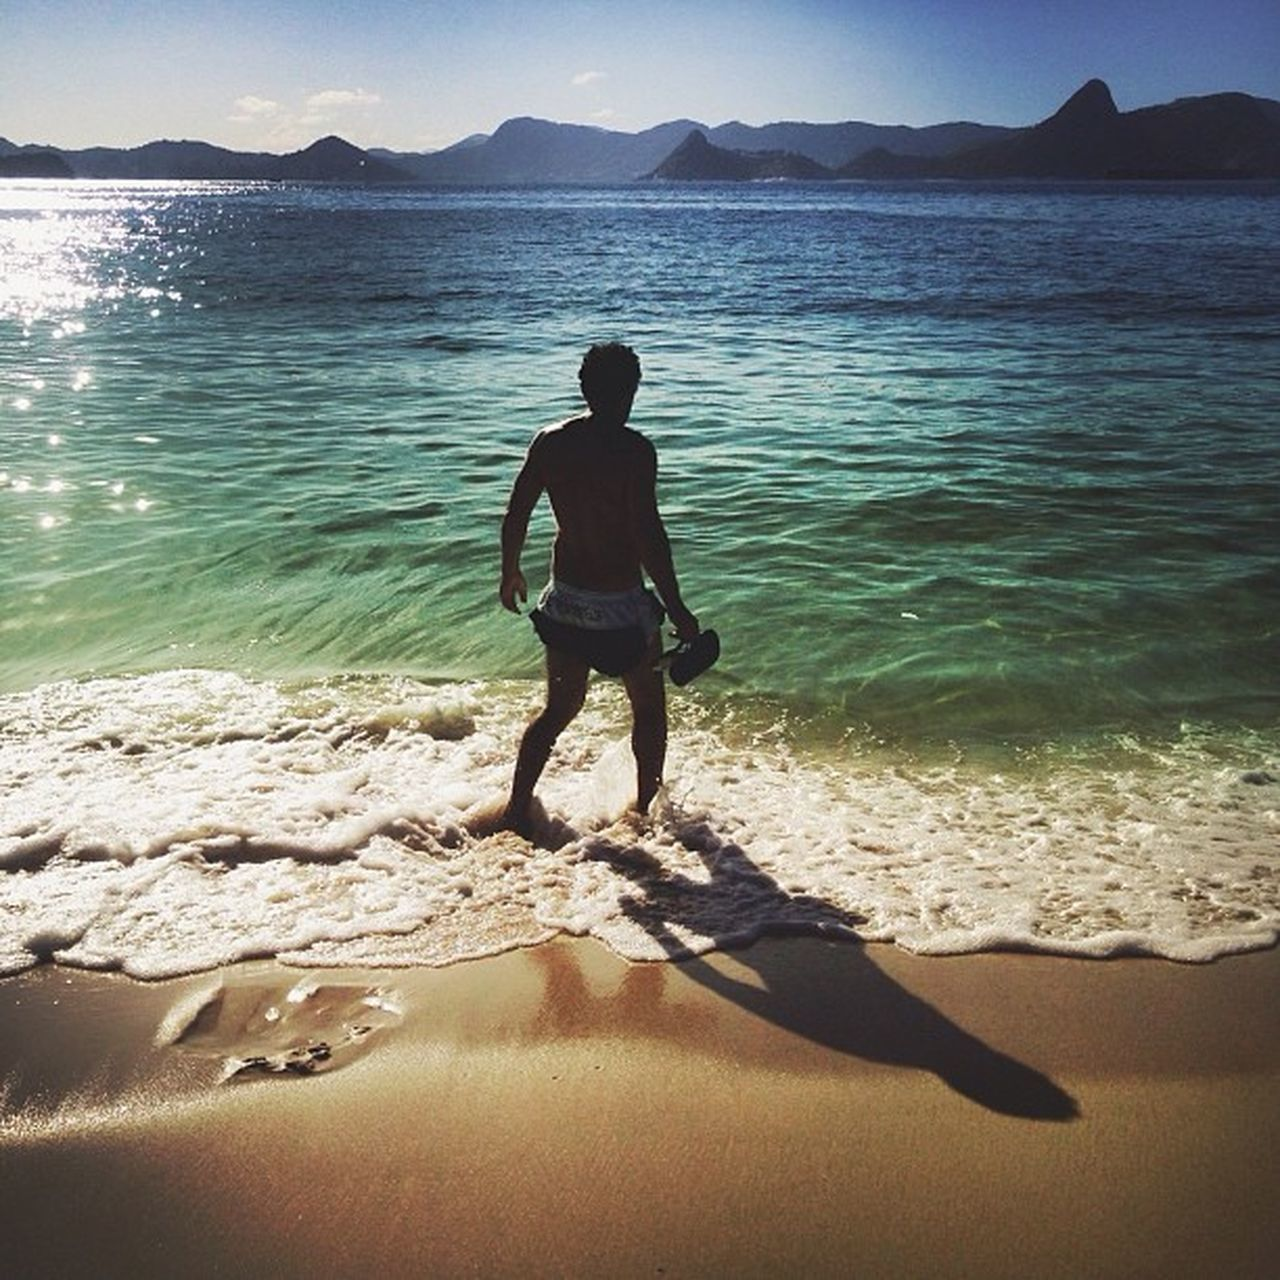 sea, real people, beach, water, lifestyles, nature, sand, leisure activity, full length, one person, beauty in nature, scenics, shadow, sunlight, vacations, outdoors, day, men, mountain, sky, young adult, people